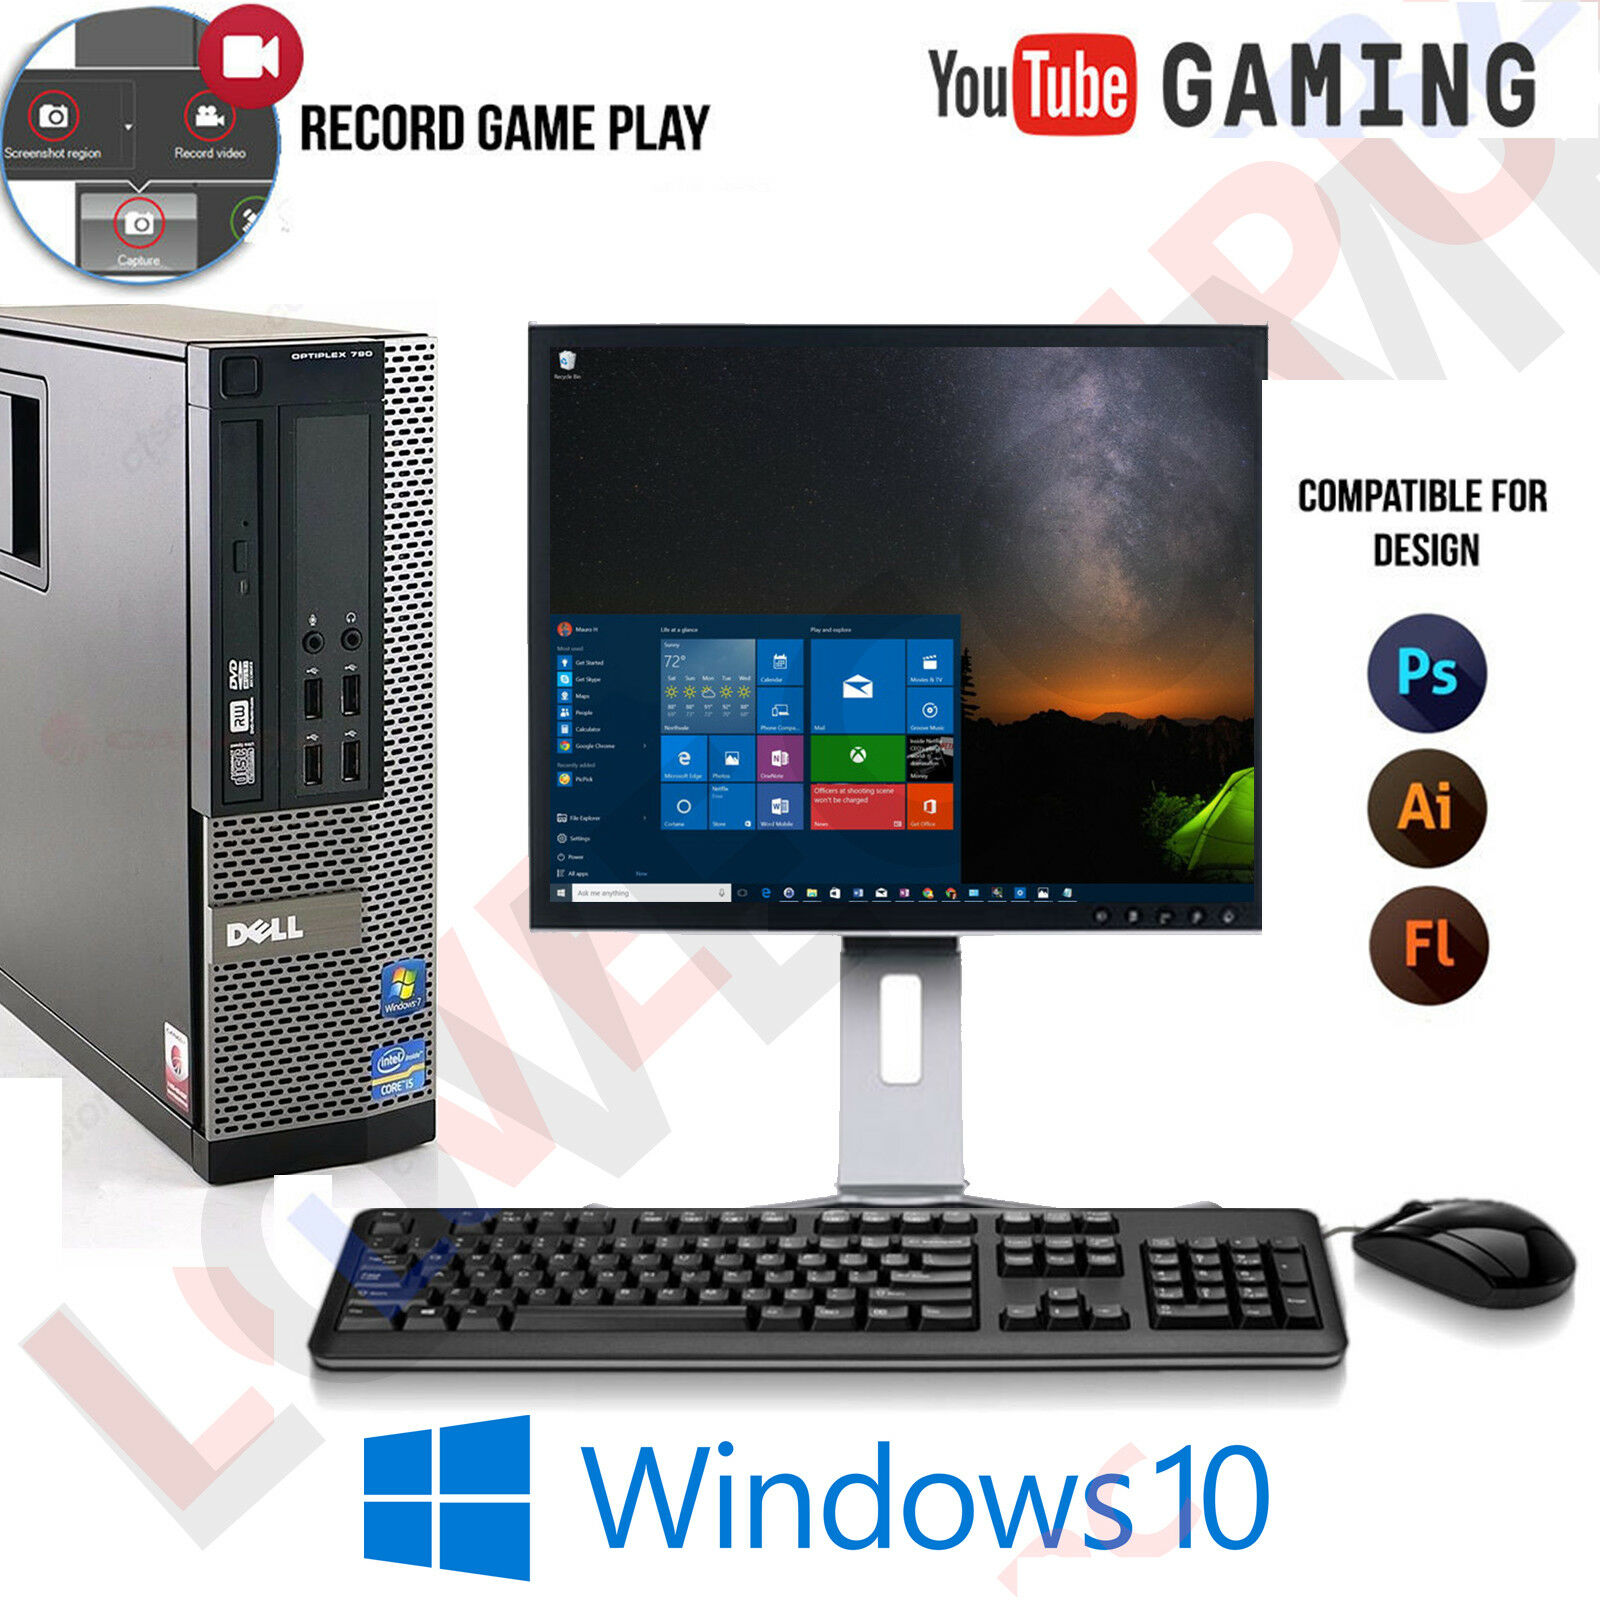 Computer Games - WINDOWS 10 GAMING COMPUTER PC INTEL CORE i5 8GB RAM 1TB HDD DESIGN AND GAMING